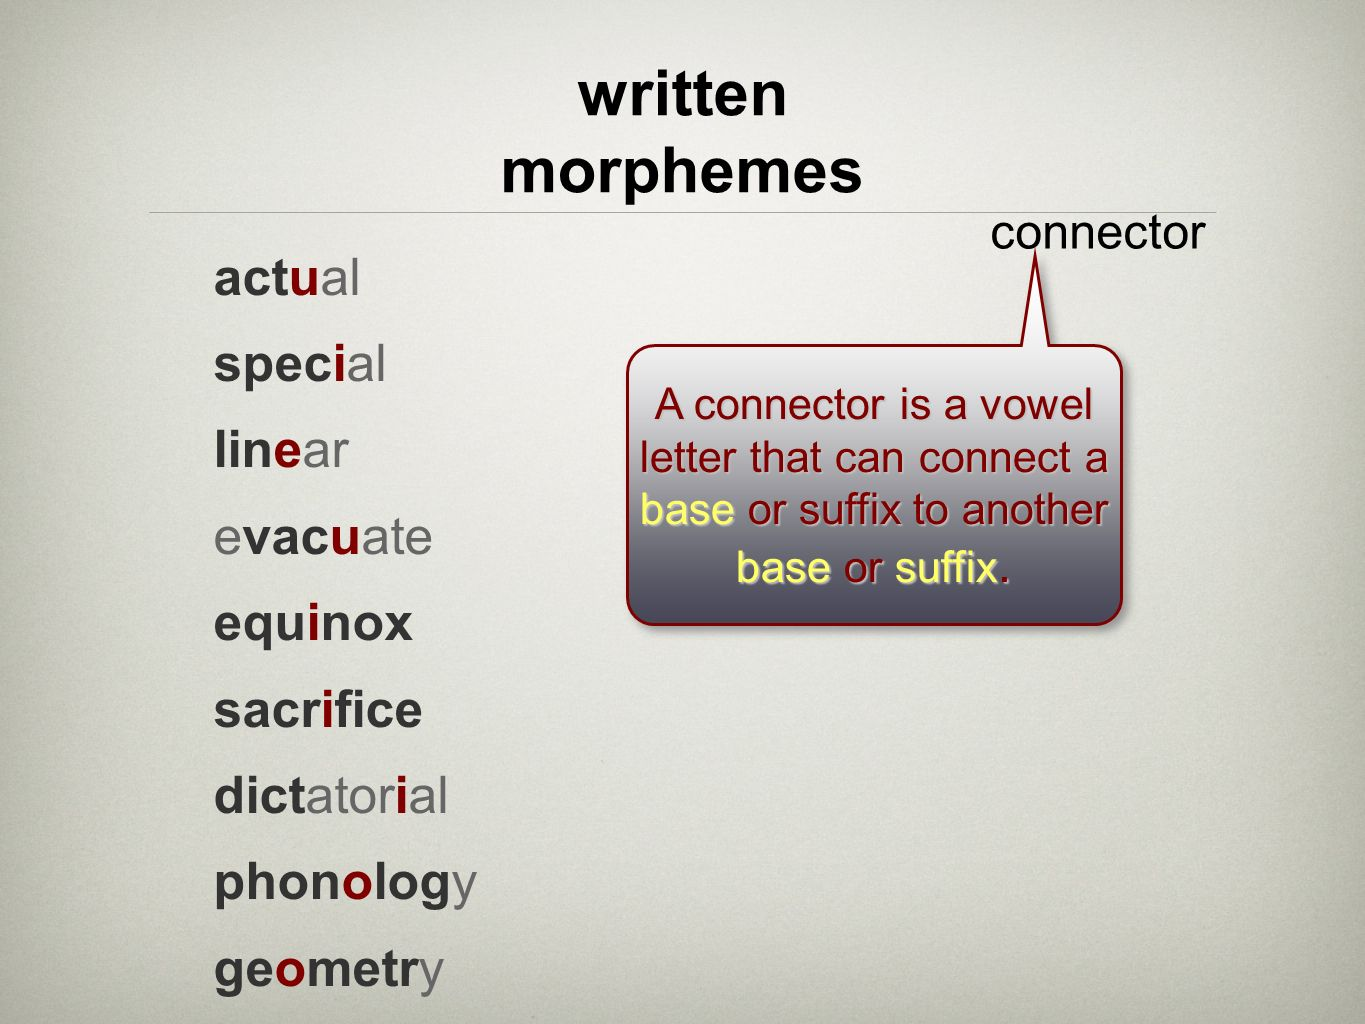 A connector is a vowel letter that can connect a base or suffix to another base or suffix. written morphemes connector actual special linear evacuate